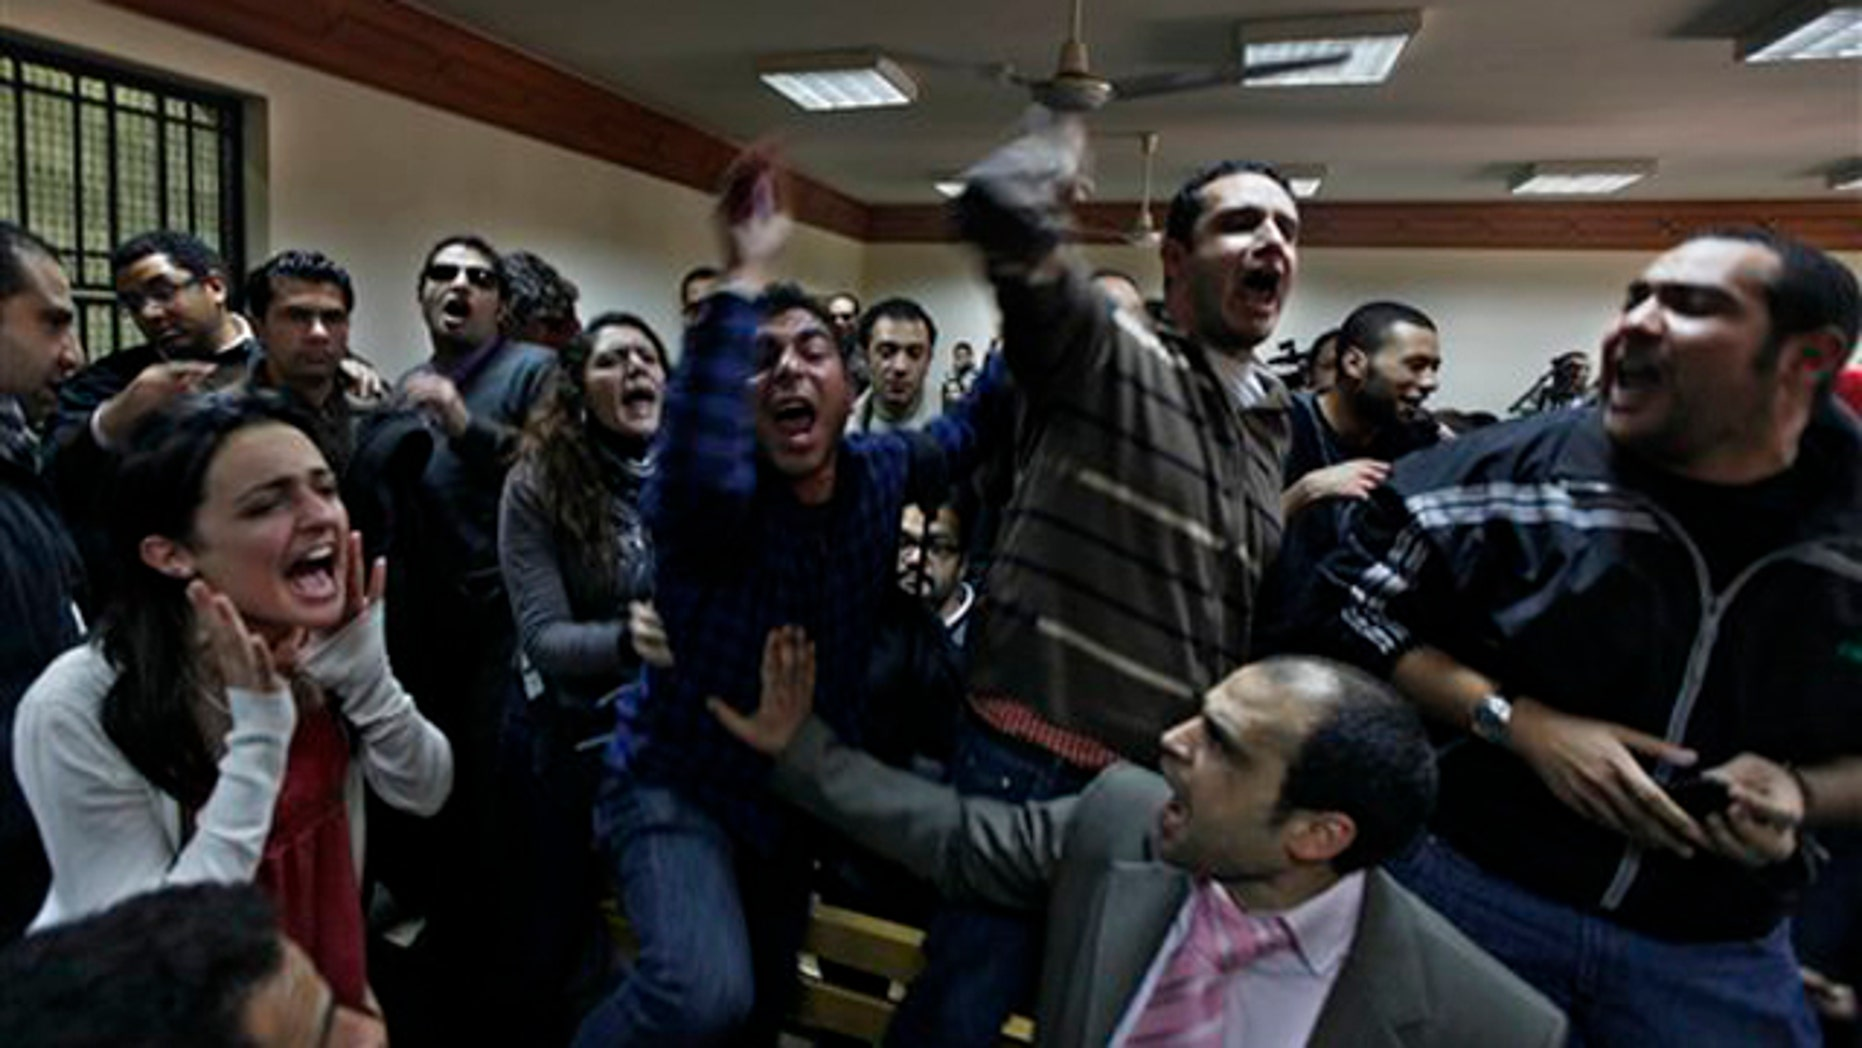 Feb. 26, 2012: Protesters chant anti-military ruling slogans during a trial of employees of pro-democracy groups in Cairo, Egypt.